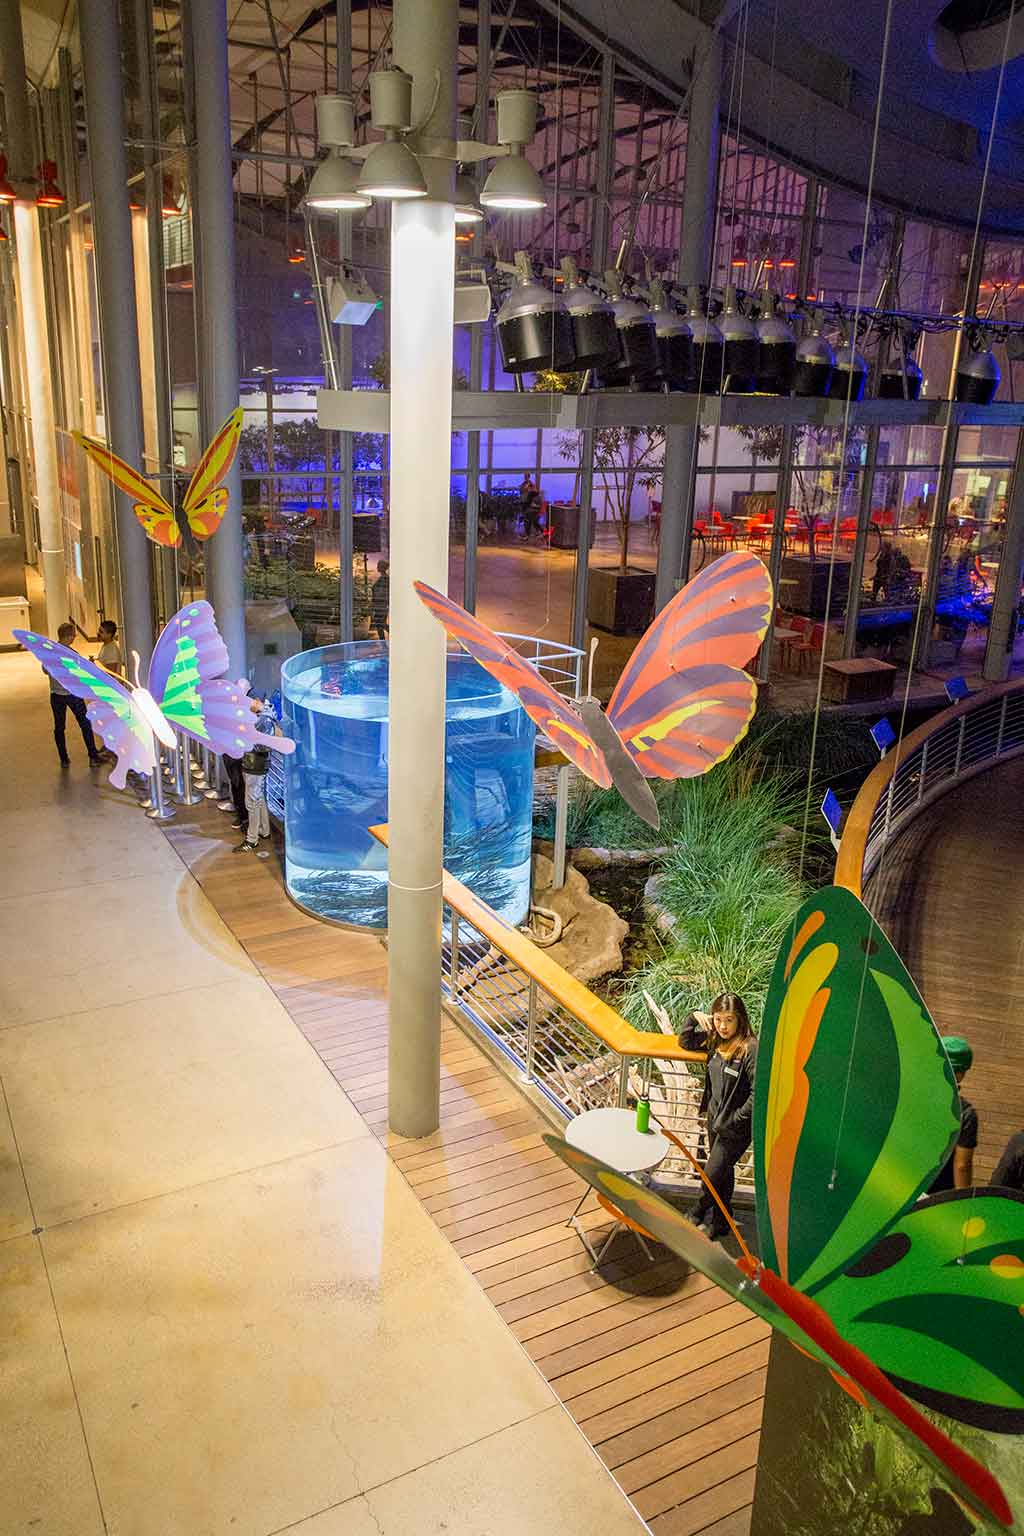 drive-swim-fly-california-academy-of-sciences-san-francisco-nitelife-adult-museum-night-butterflies